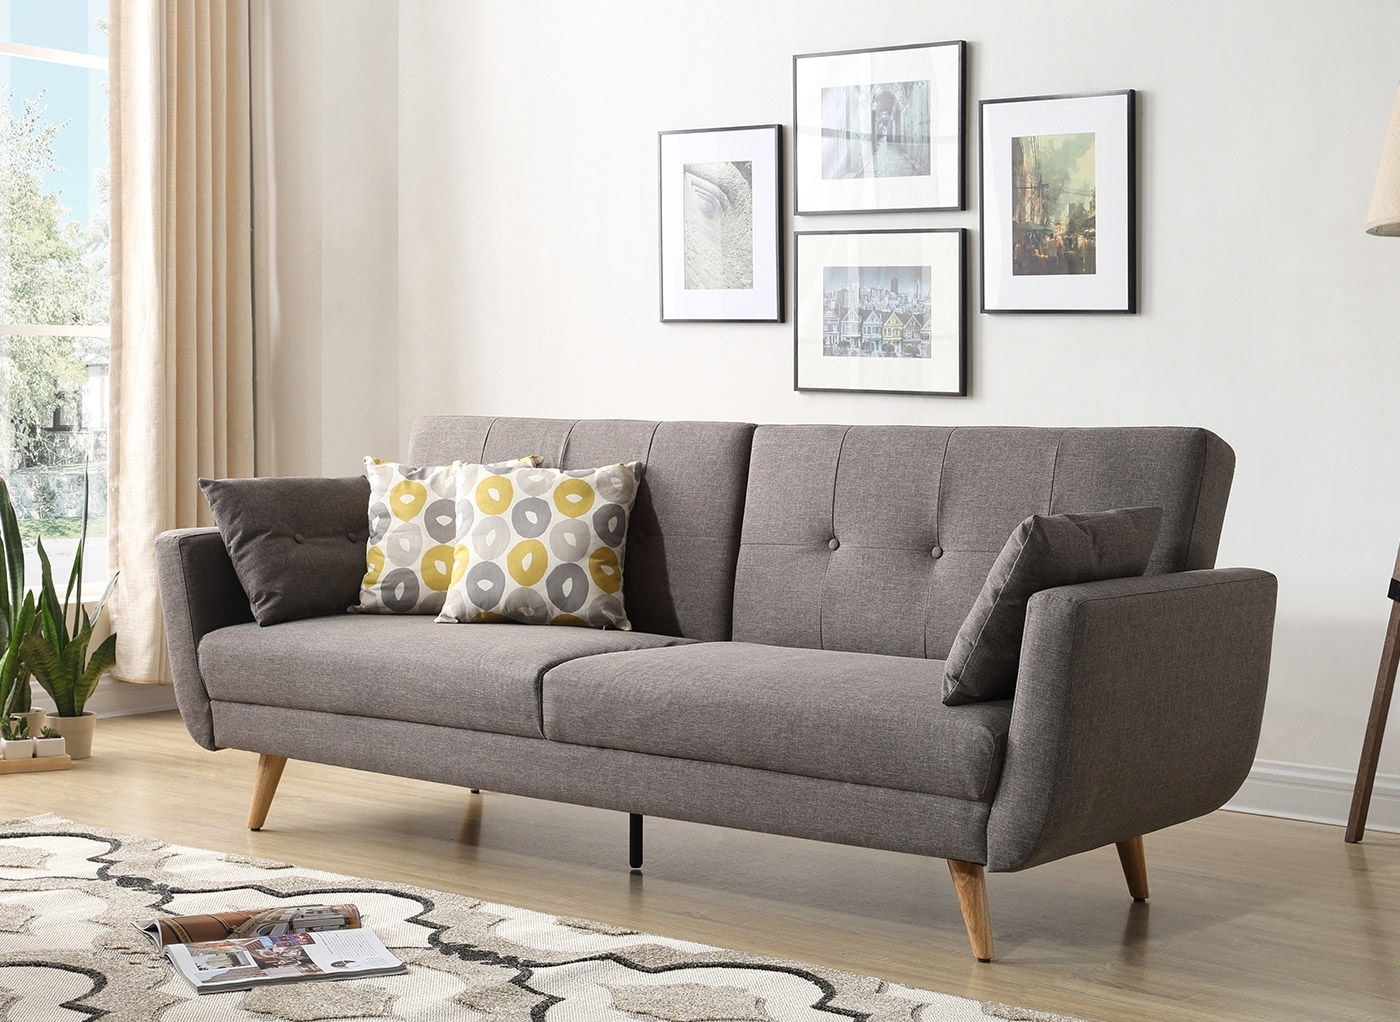 Most Popular Mid Range Sofas For Mid Range Sofas Uk – Hereo Sofa (View 15 of 20)